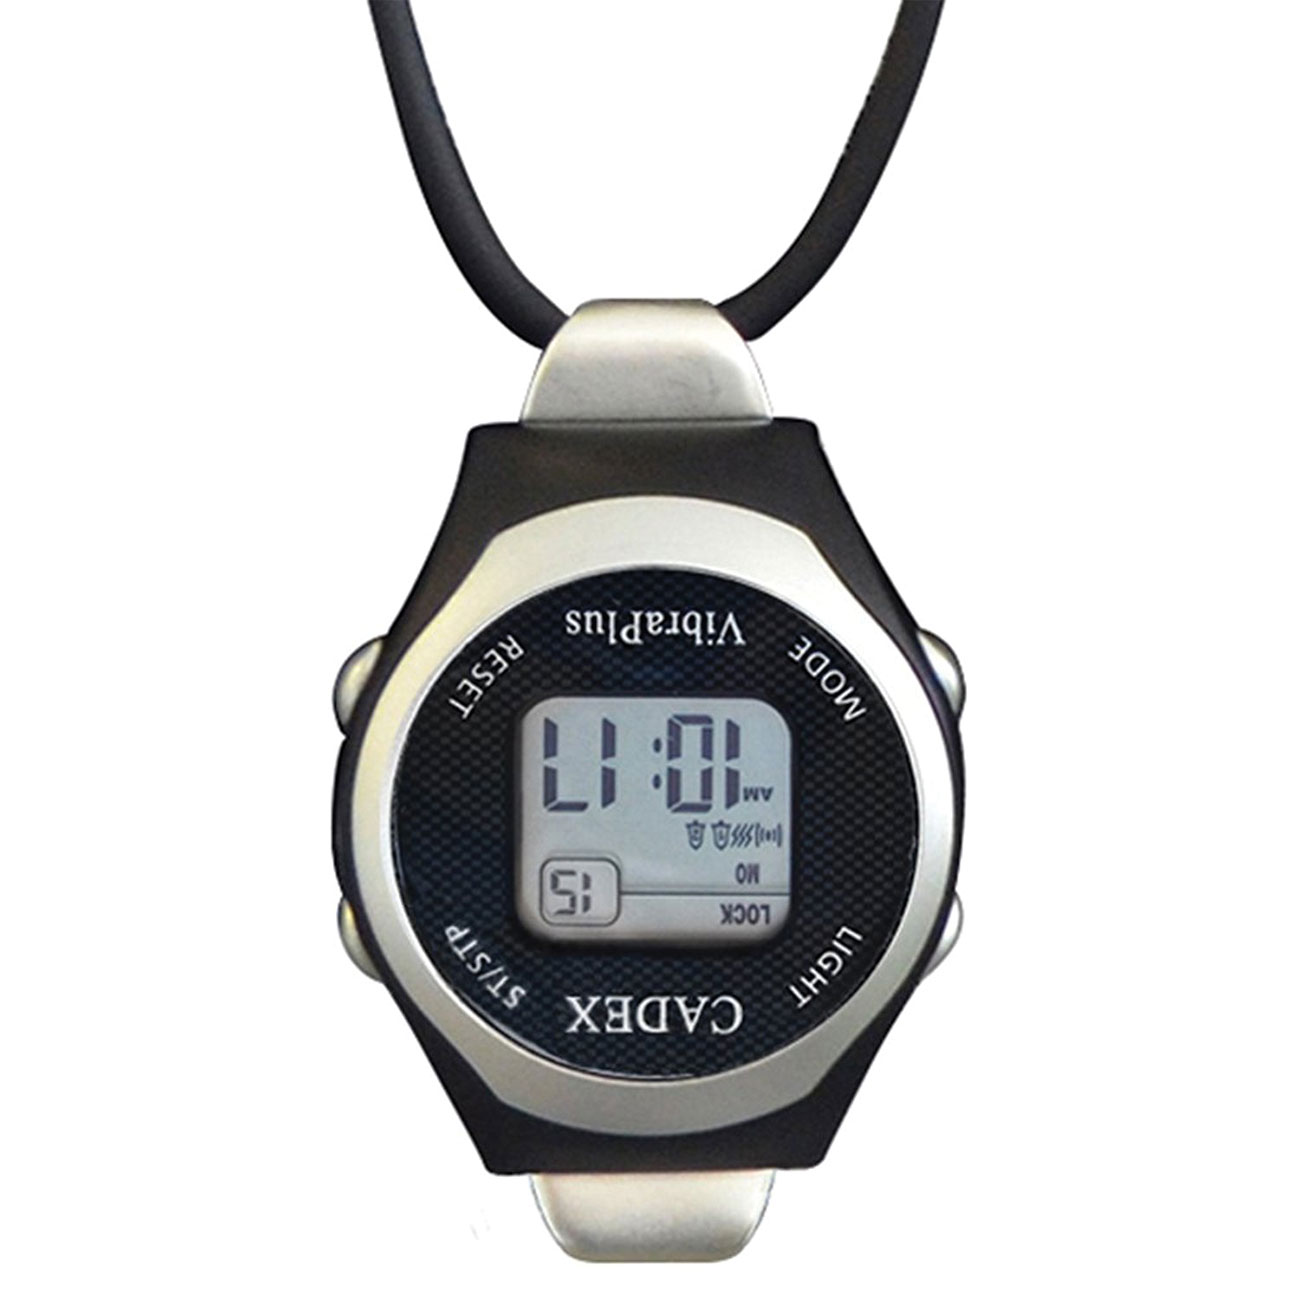 e-pill CADEX VibraPlus Fob Pendant Vibrating Digital Alarm Watch